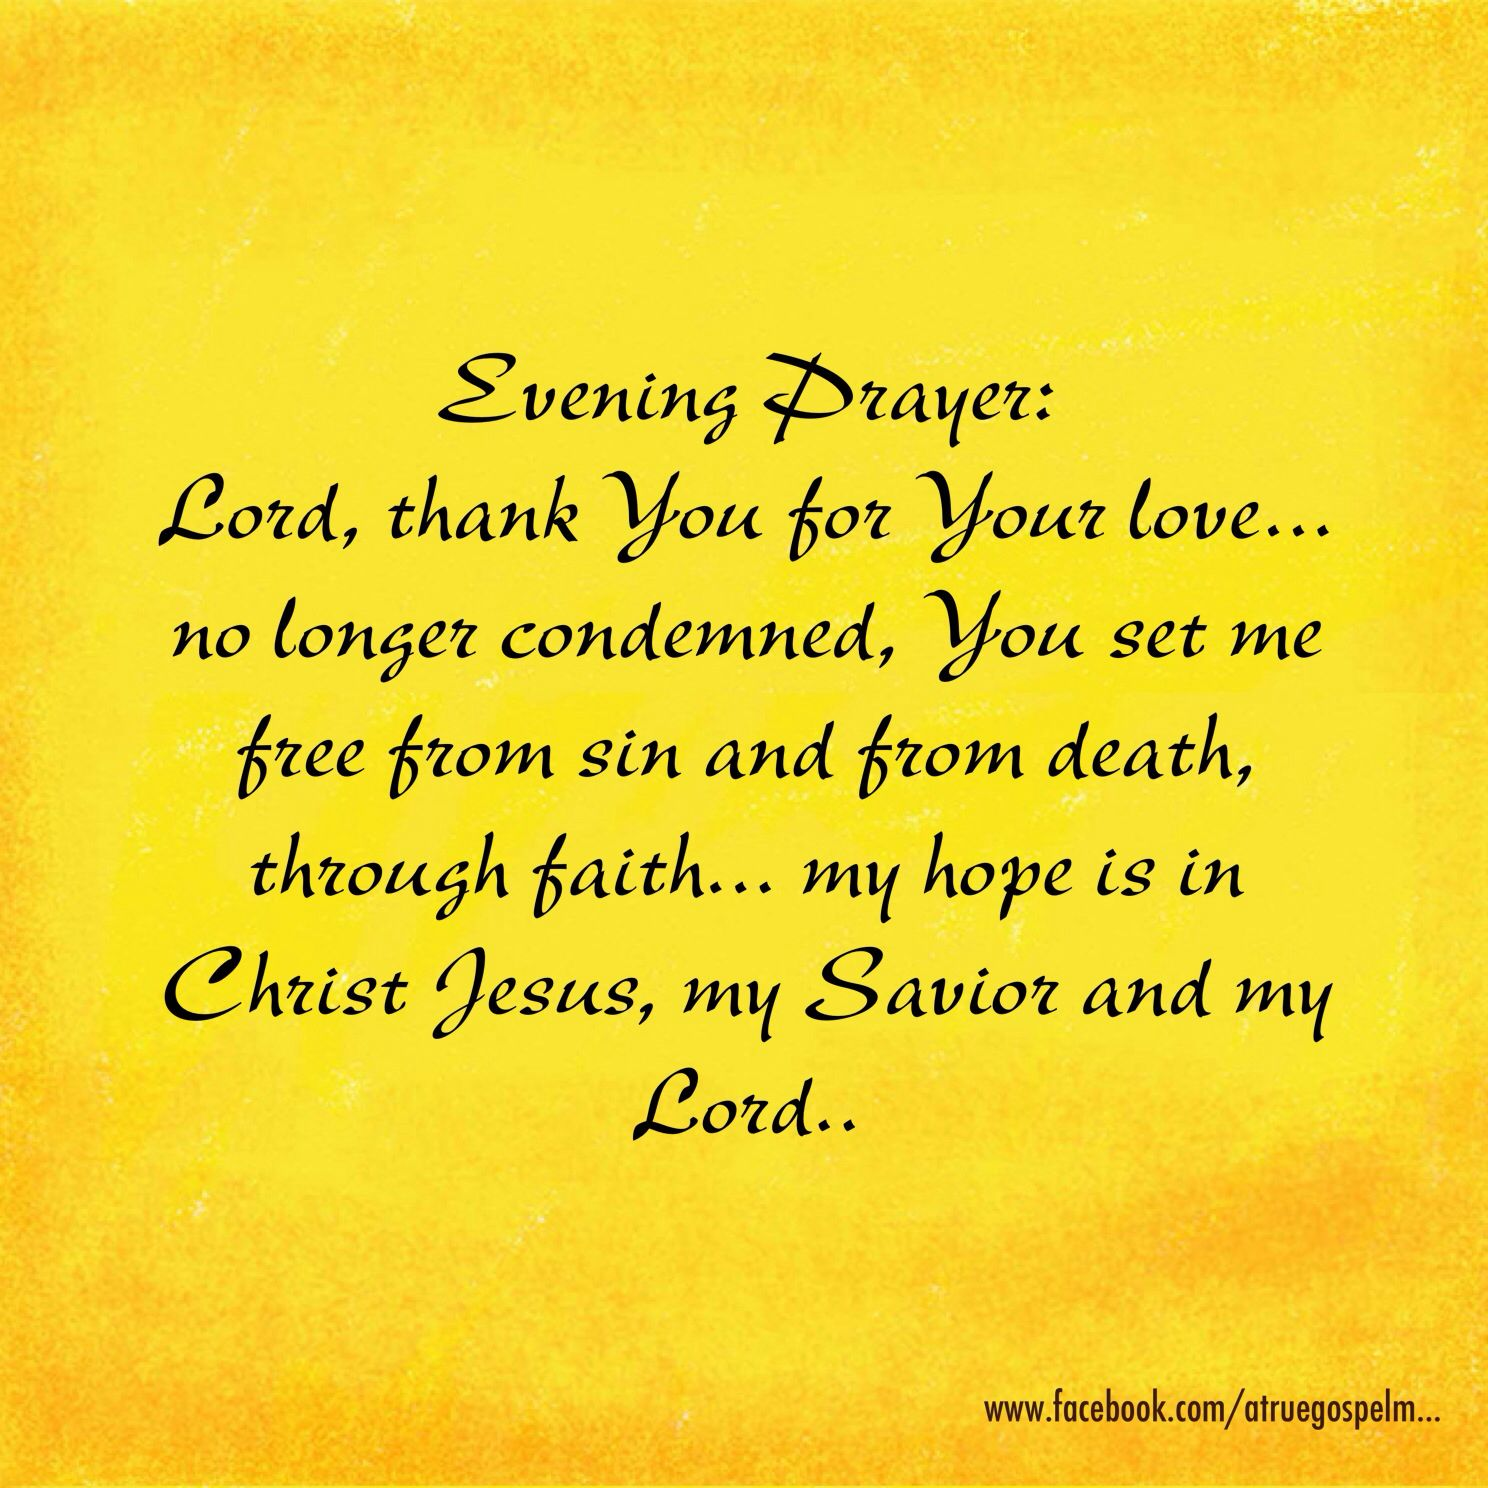 Evening Prayer: Lord, thank You for Your love.